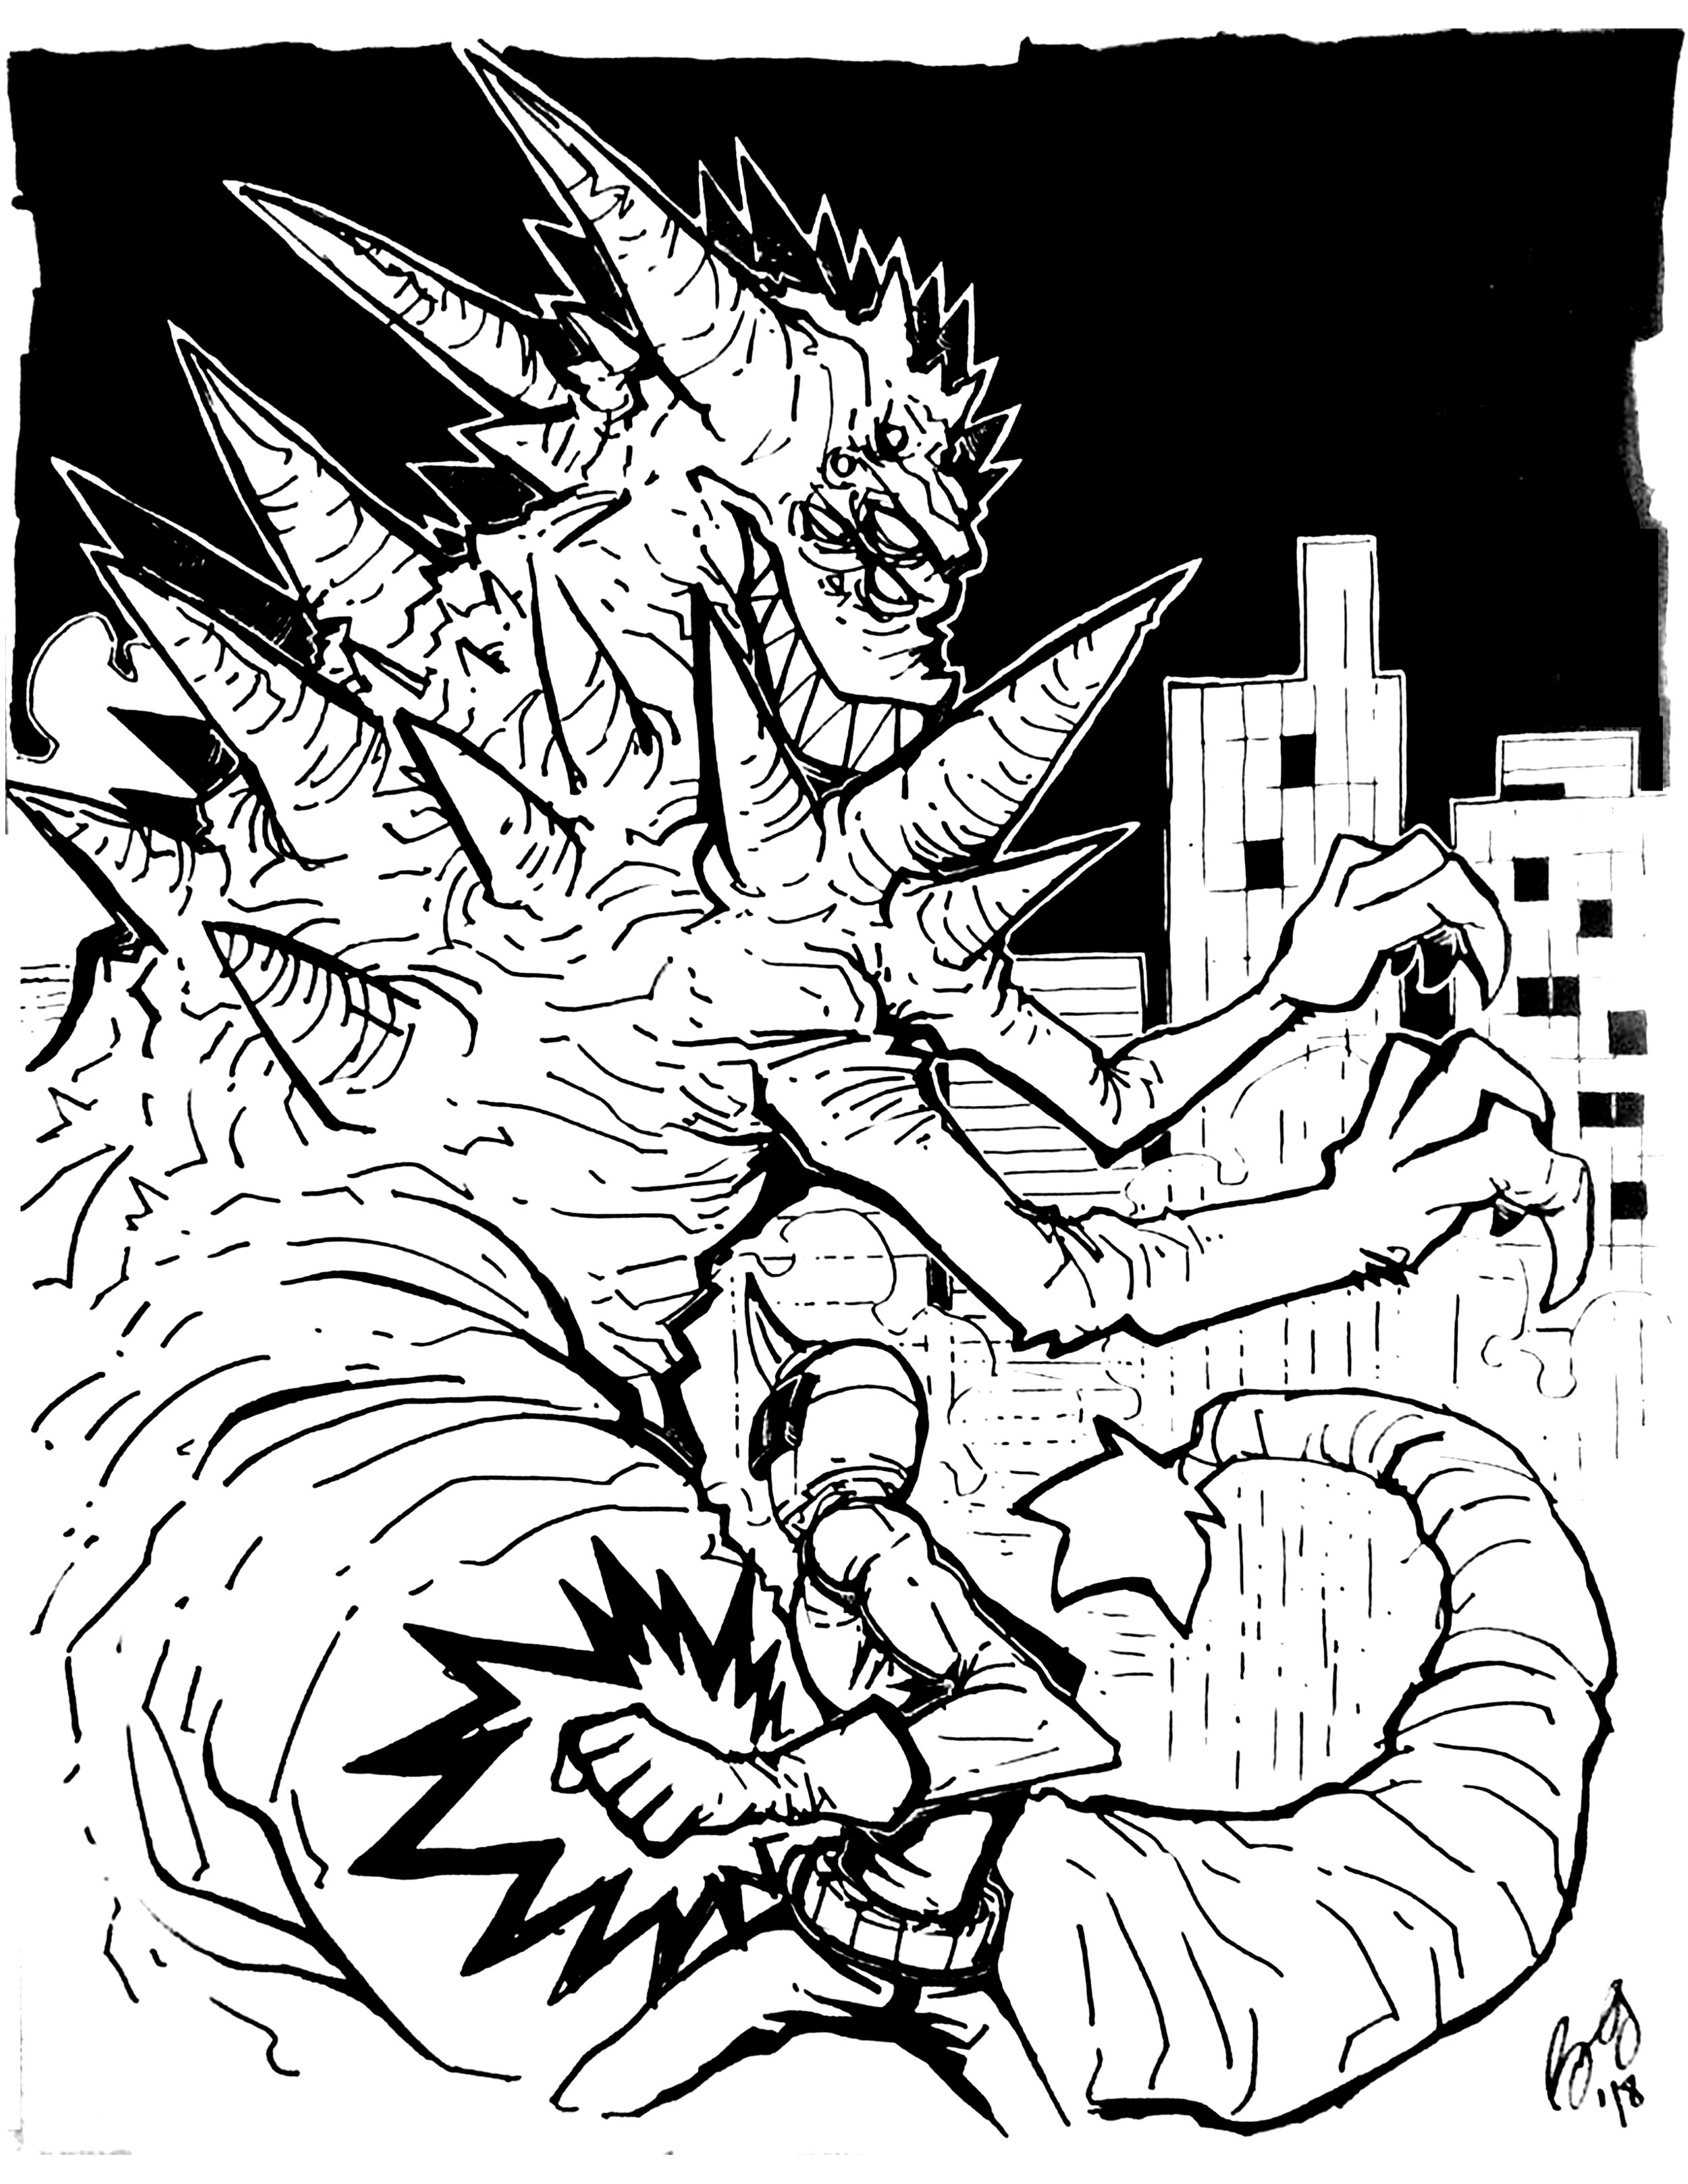 KAIJU_fight.jpg